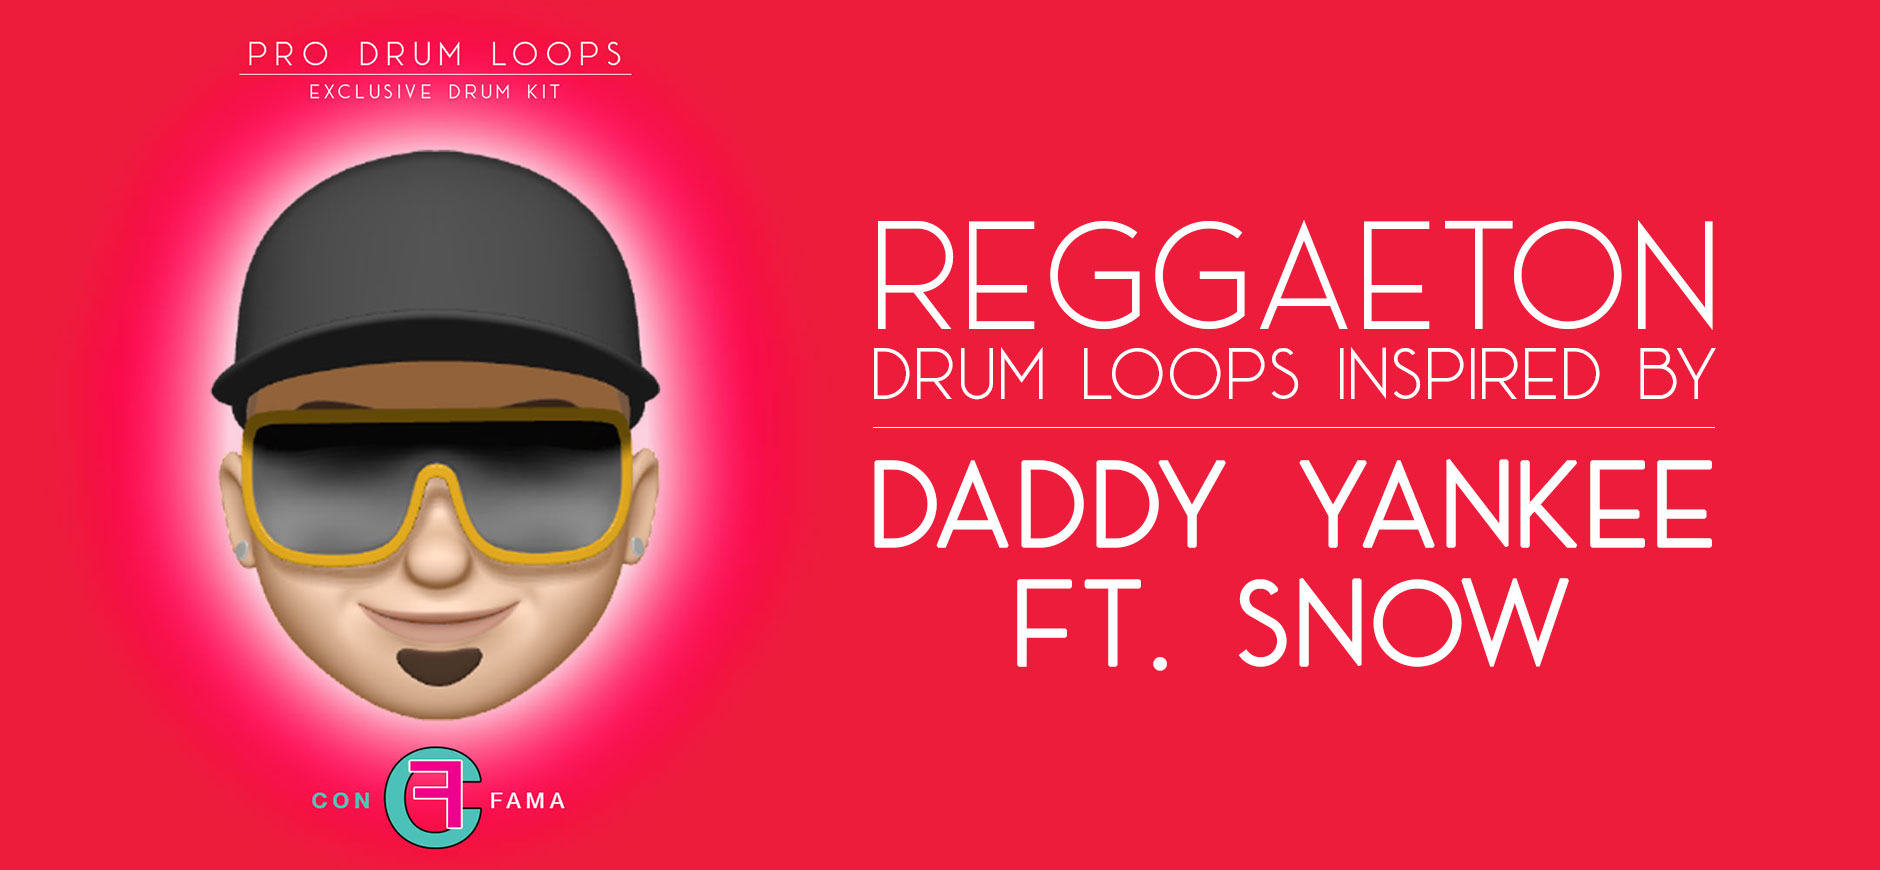 Con Calma Drum Kit Inspired by Daddy Yankee ft. Snow